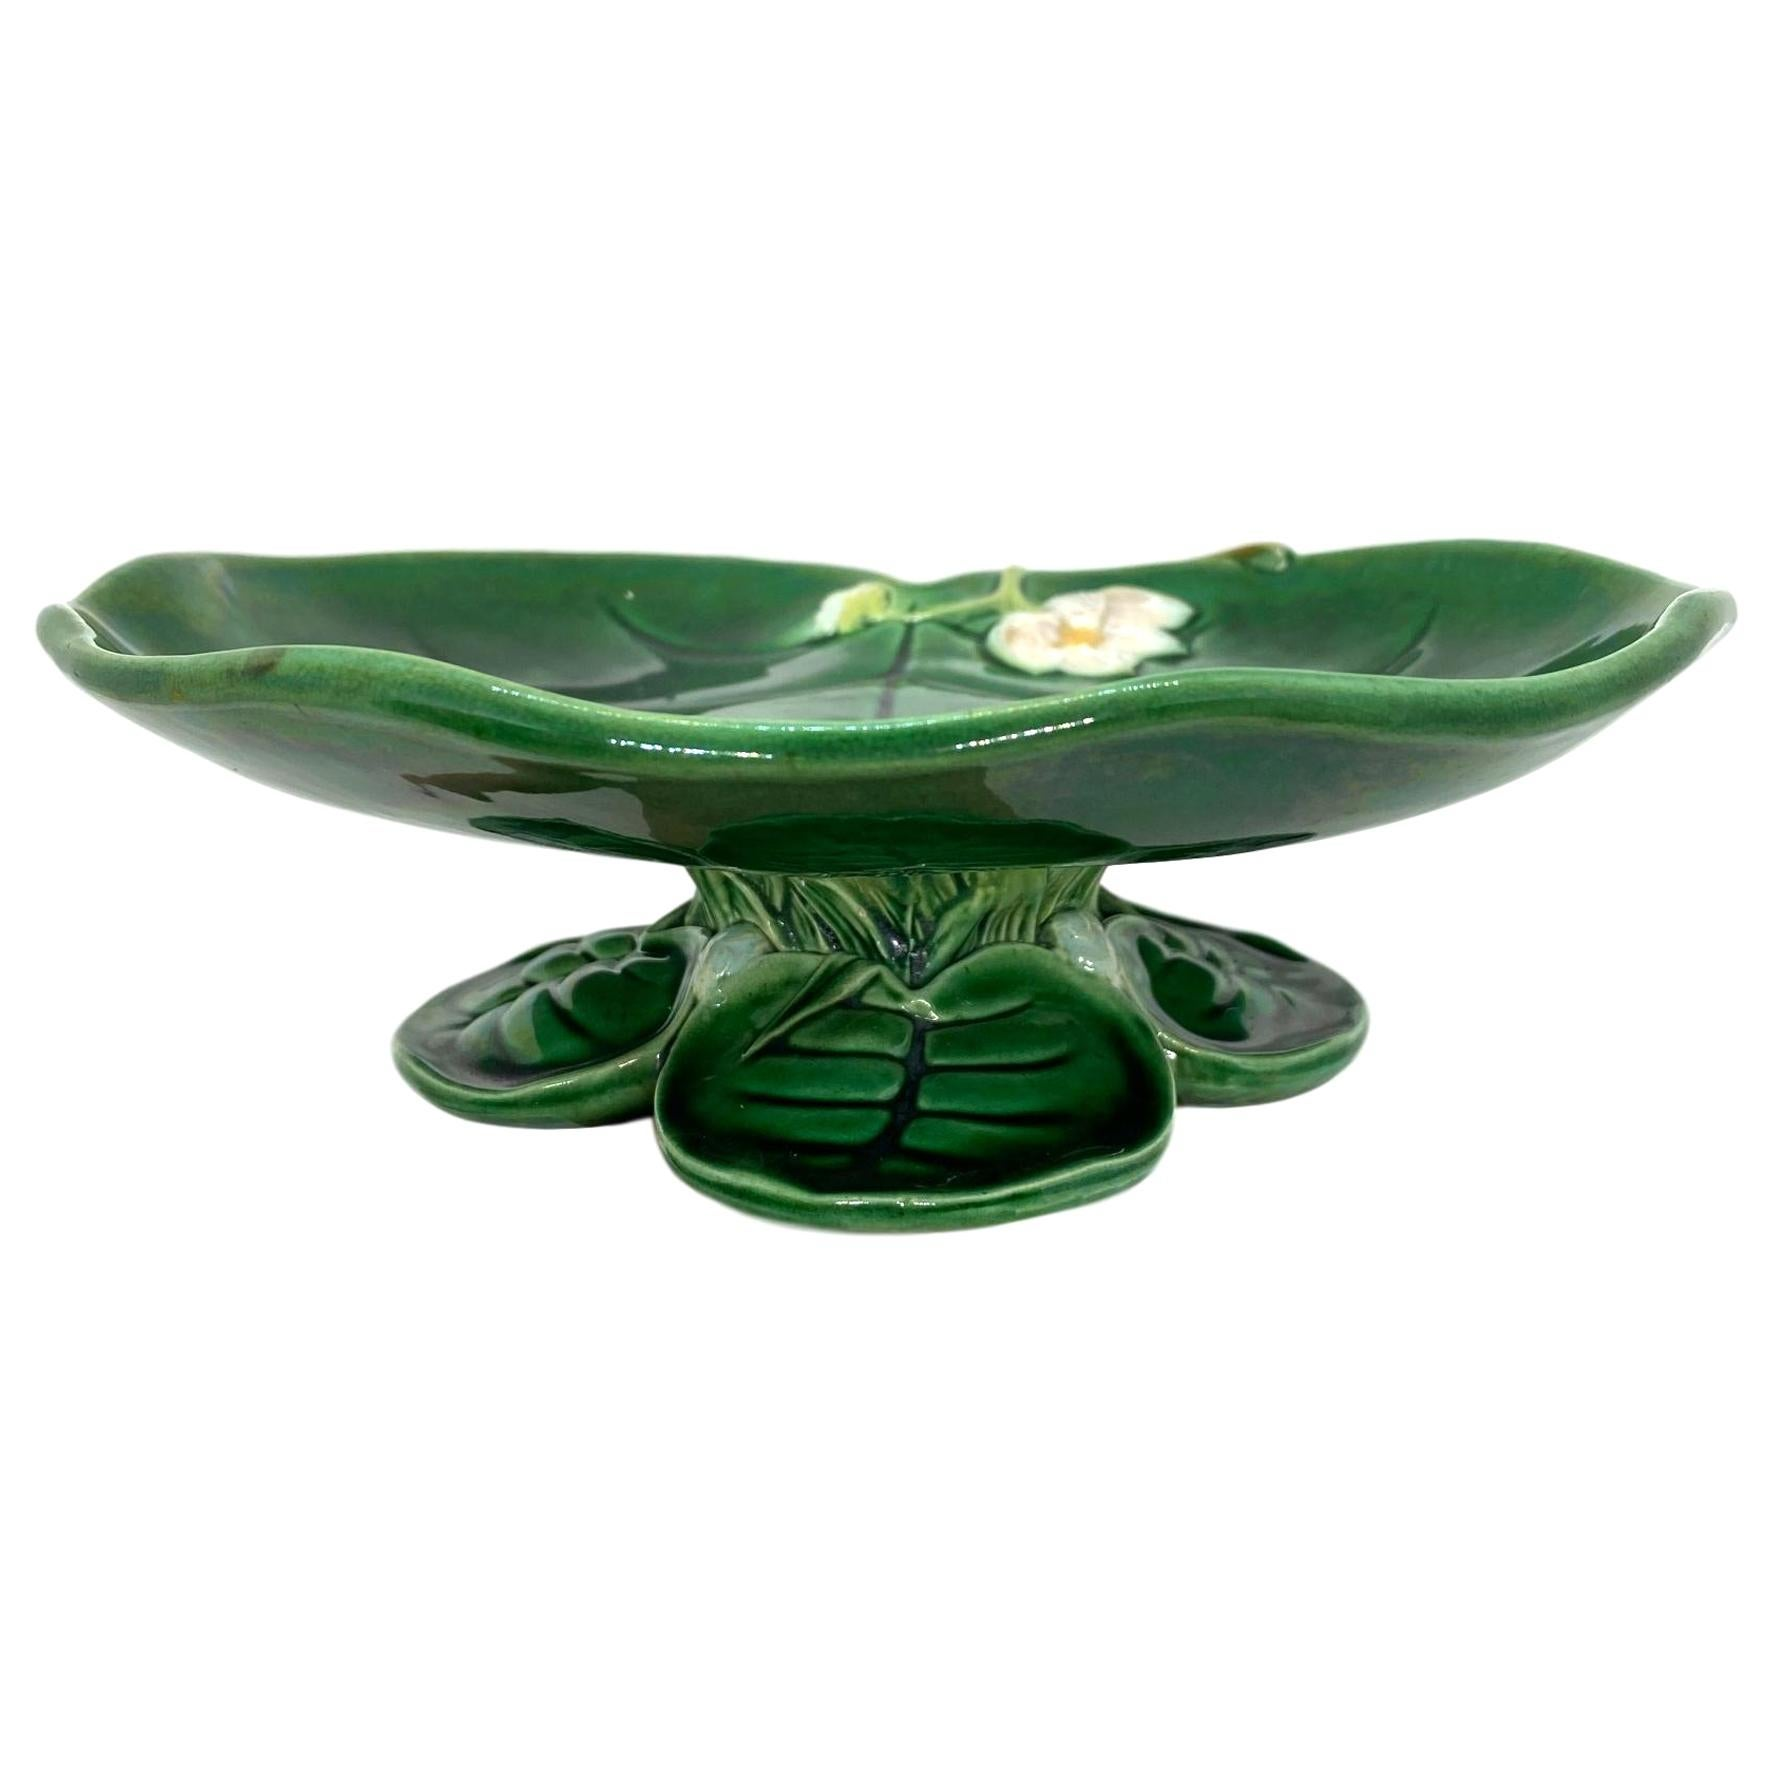 George Jones Majolica Water Lily Pad Footed Comport, Lush Greens, English, 1877